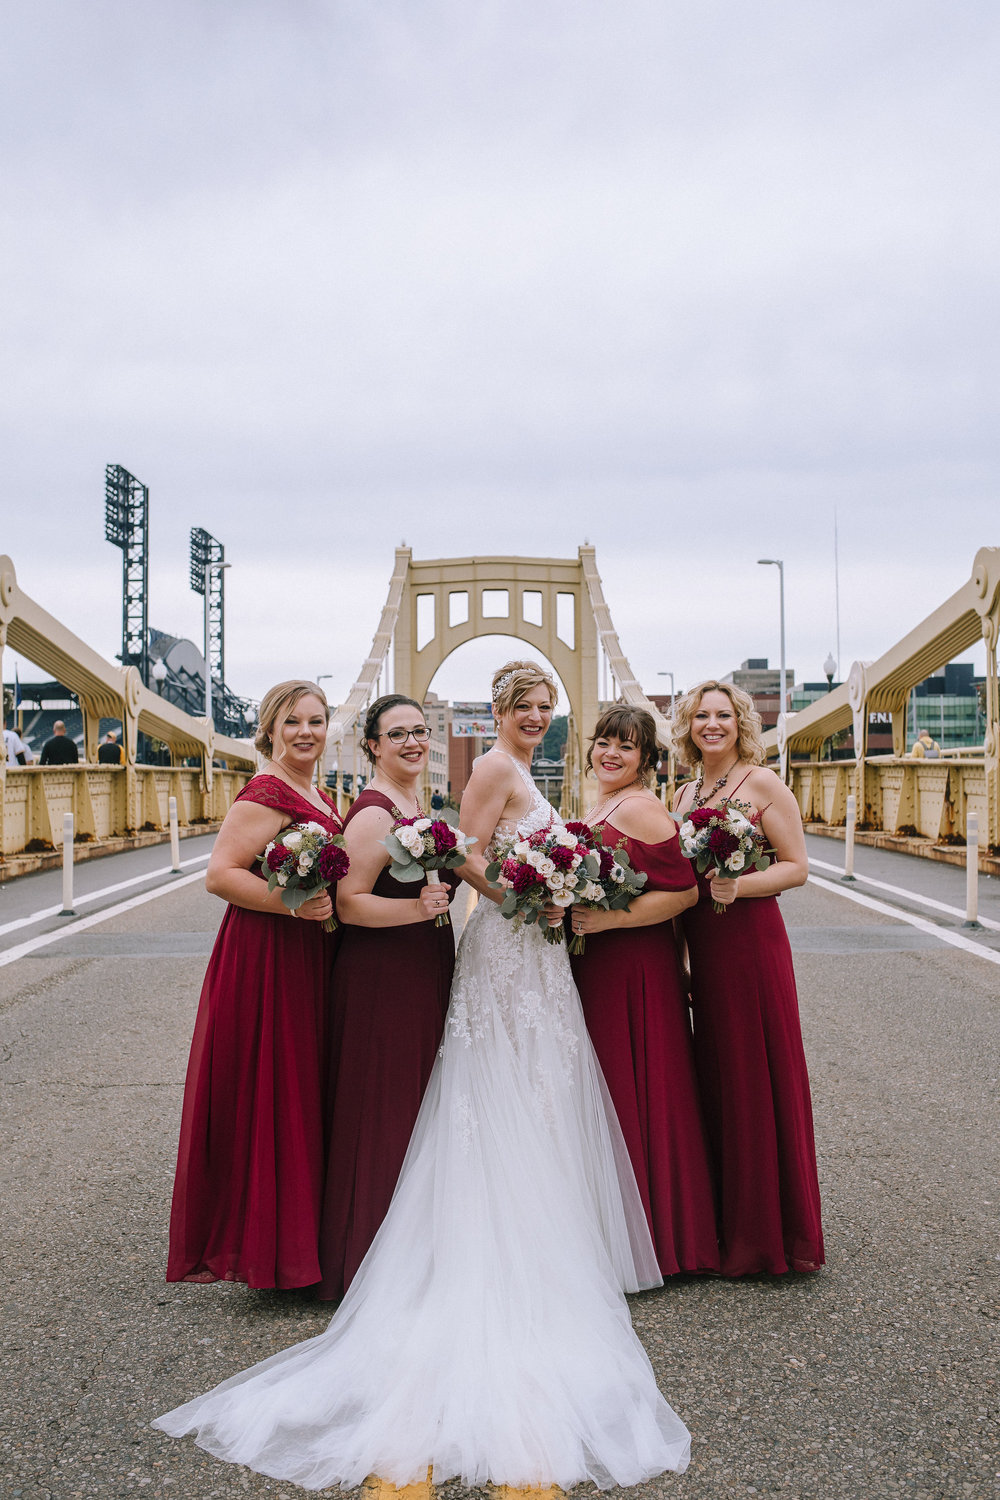 Bride poses for wedding photos with bridesmaids in red bridesmaids dresses for Pittsburgh wedding at Studio Slate planned by Exhale Events. Find more wedding inspiration at exhale-events.com!